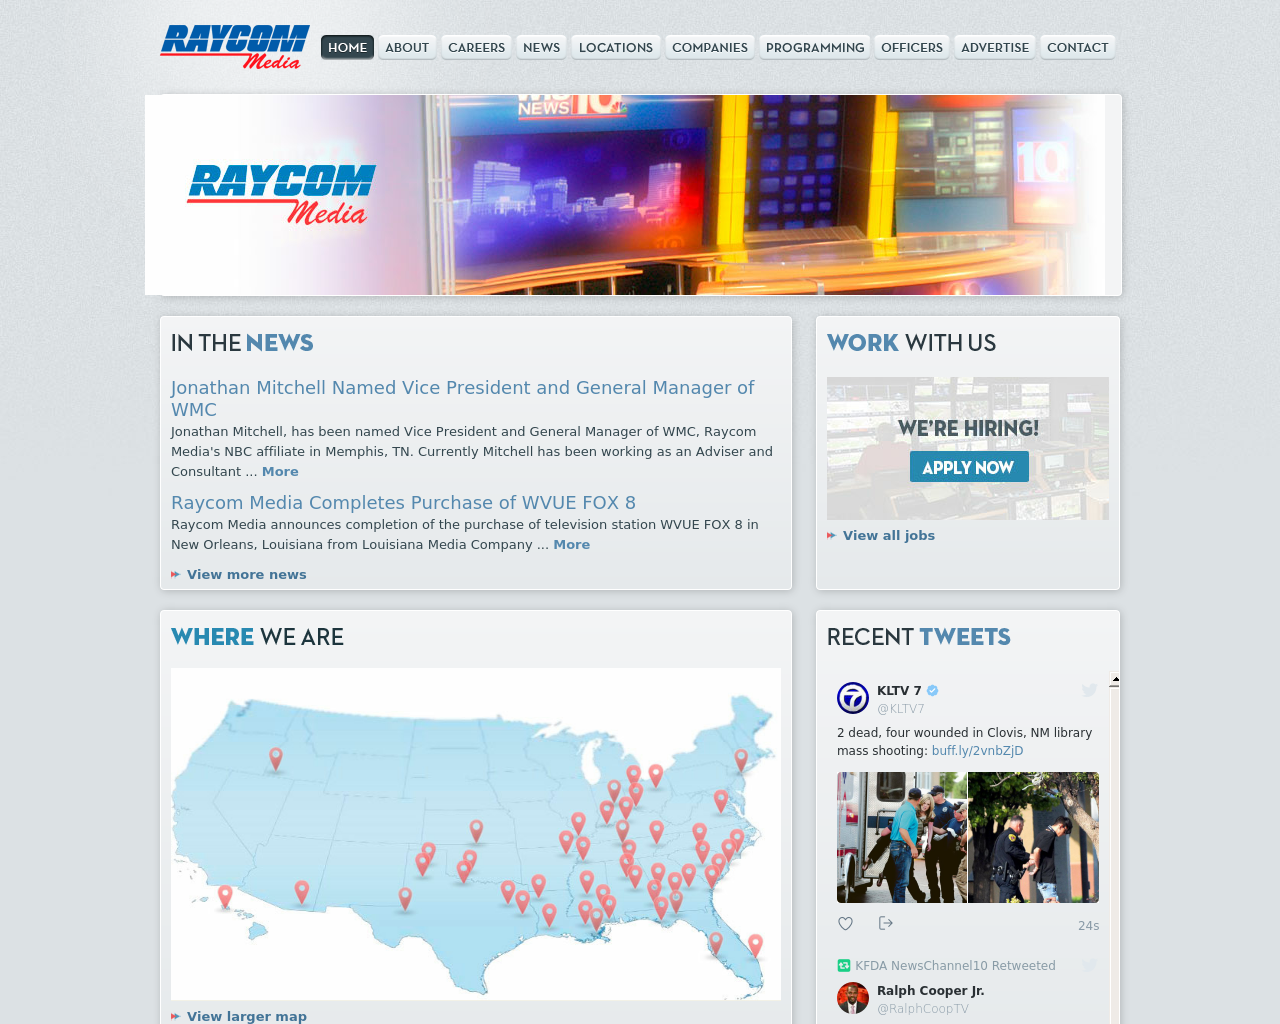 Raycom-Media-Advertising-Reviews-Pricing